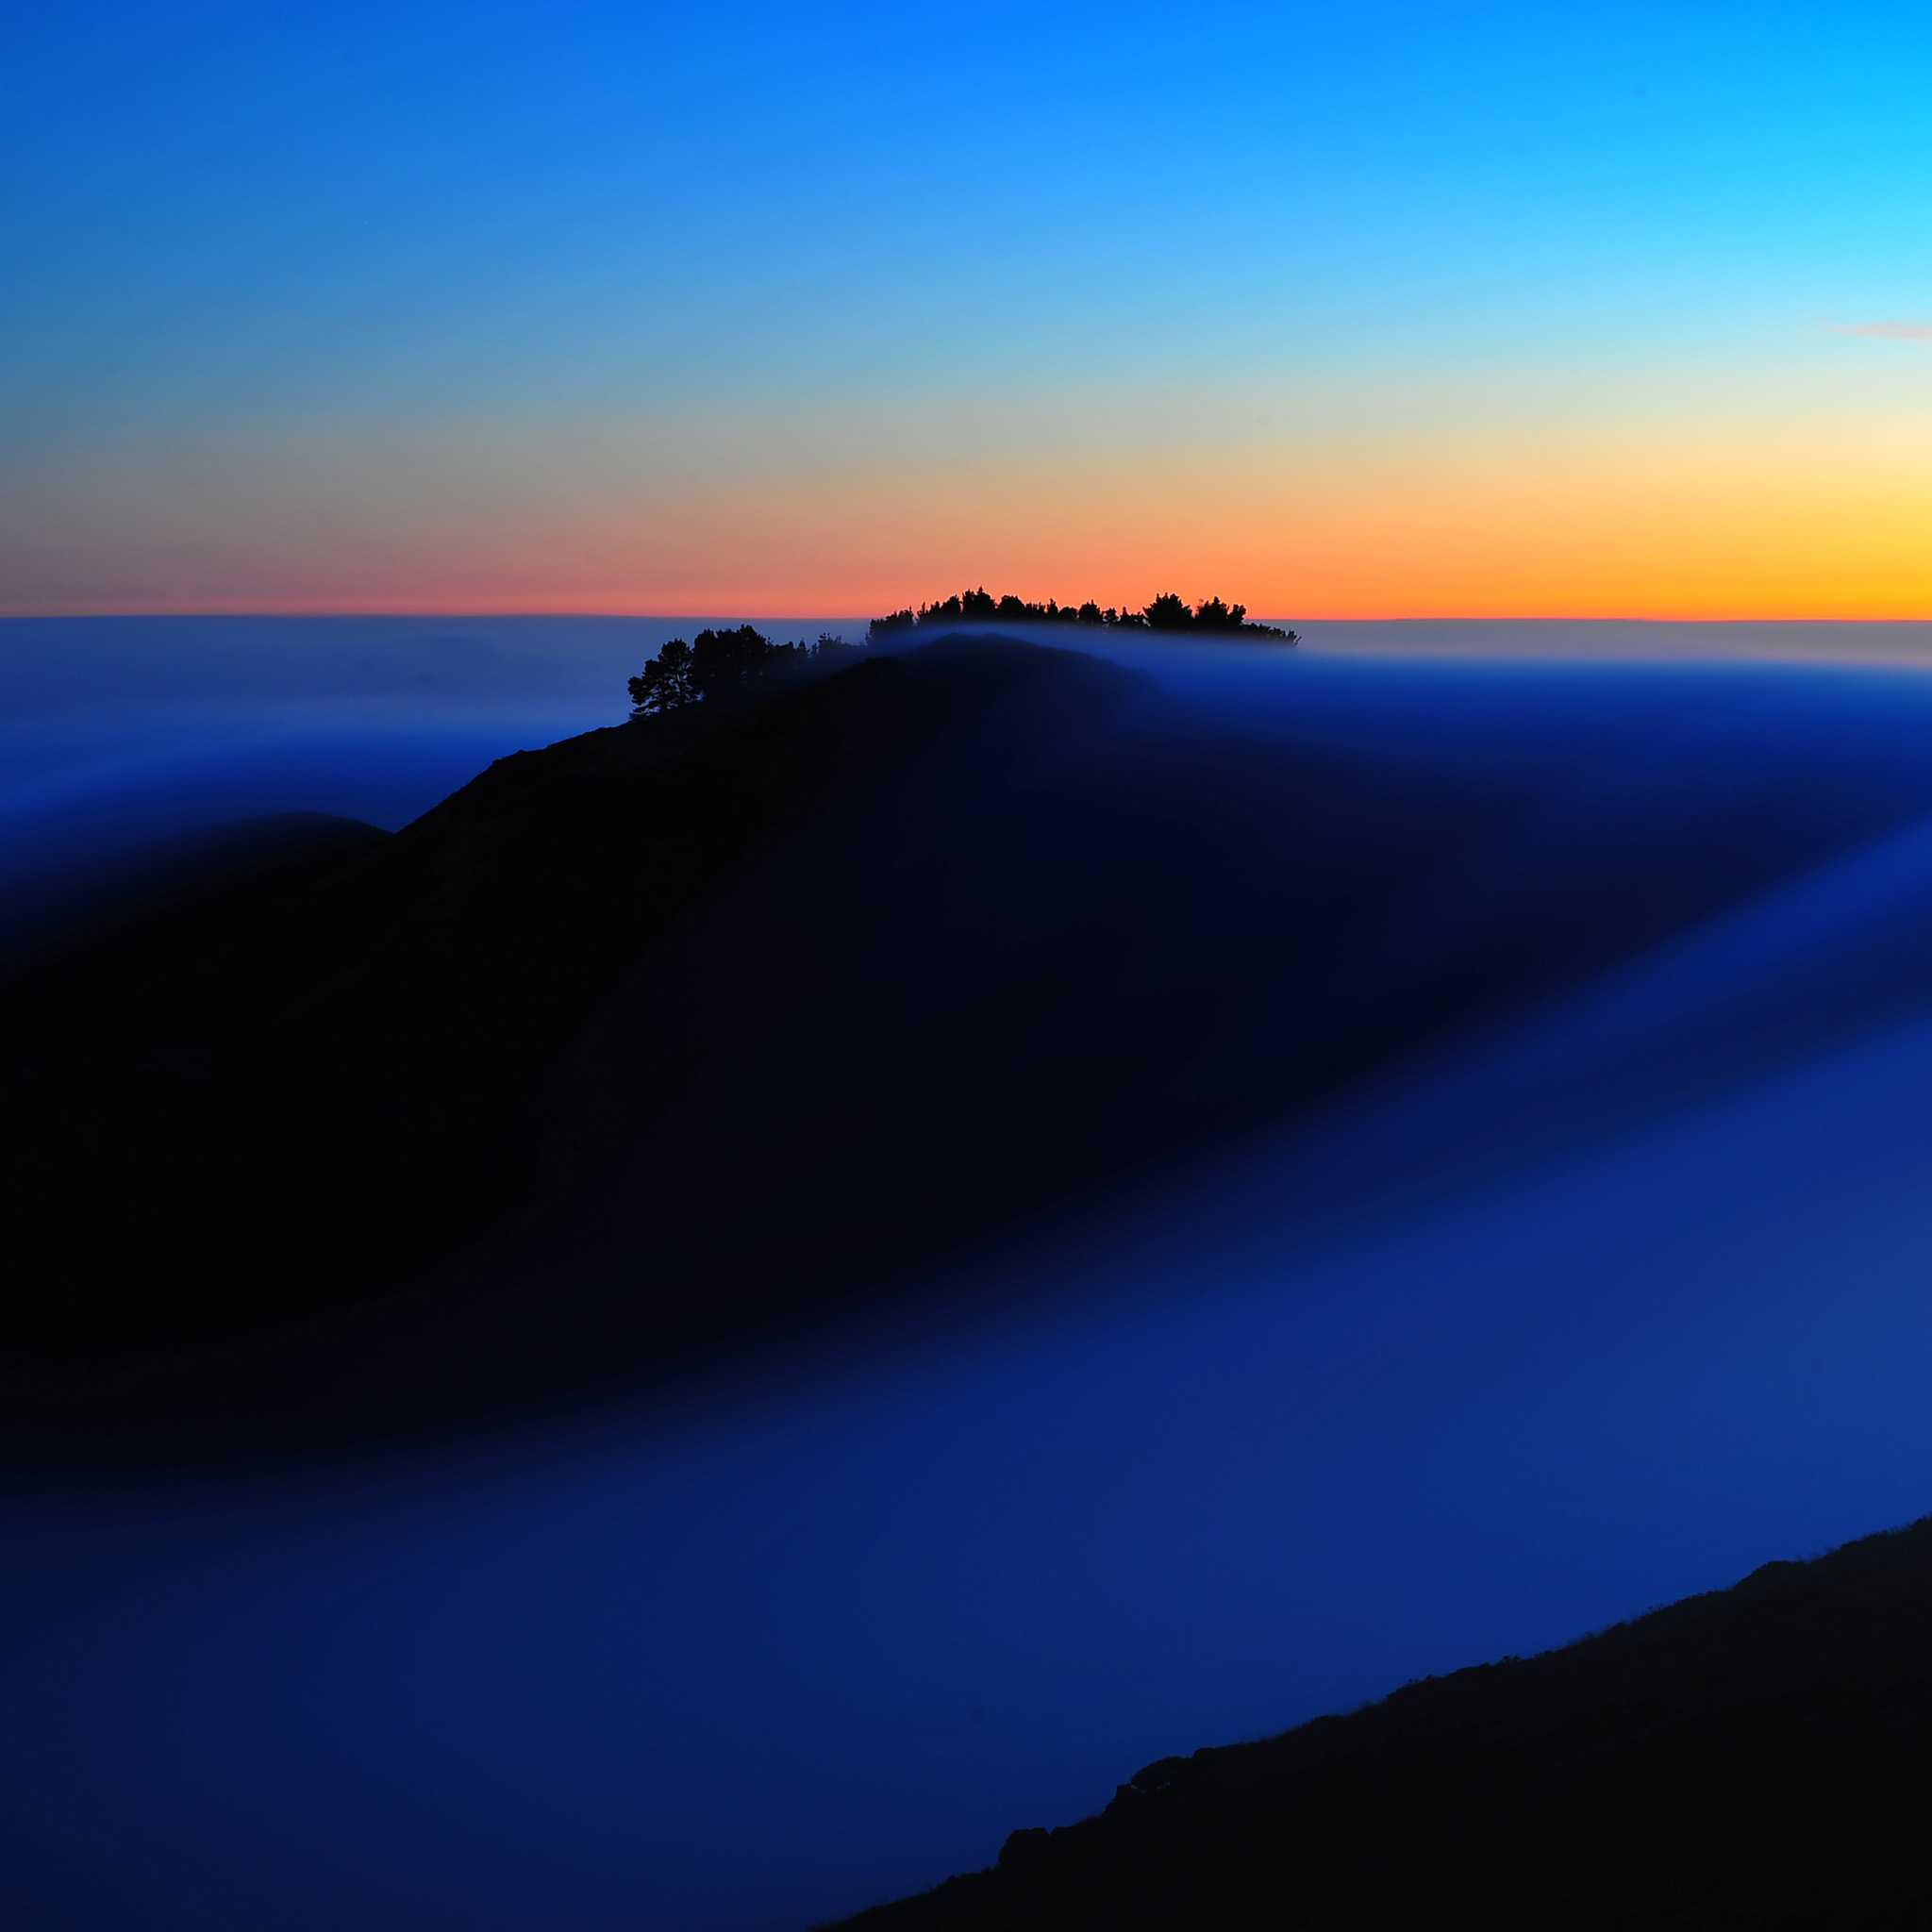 mike behnken - foggy dreamscape ipad wallpaper